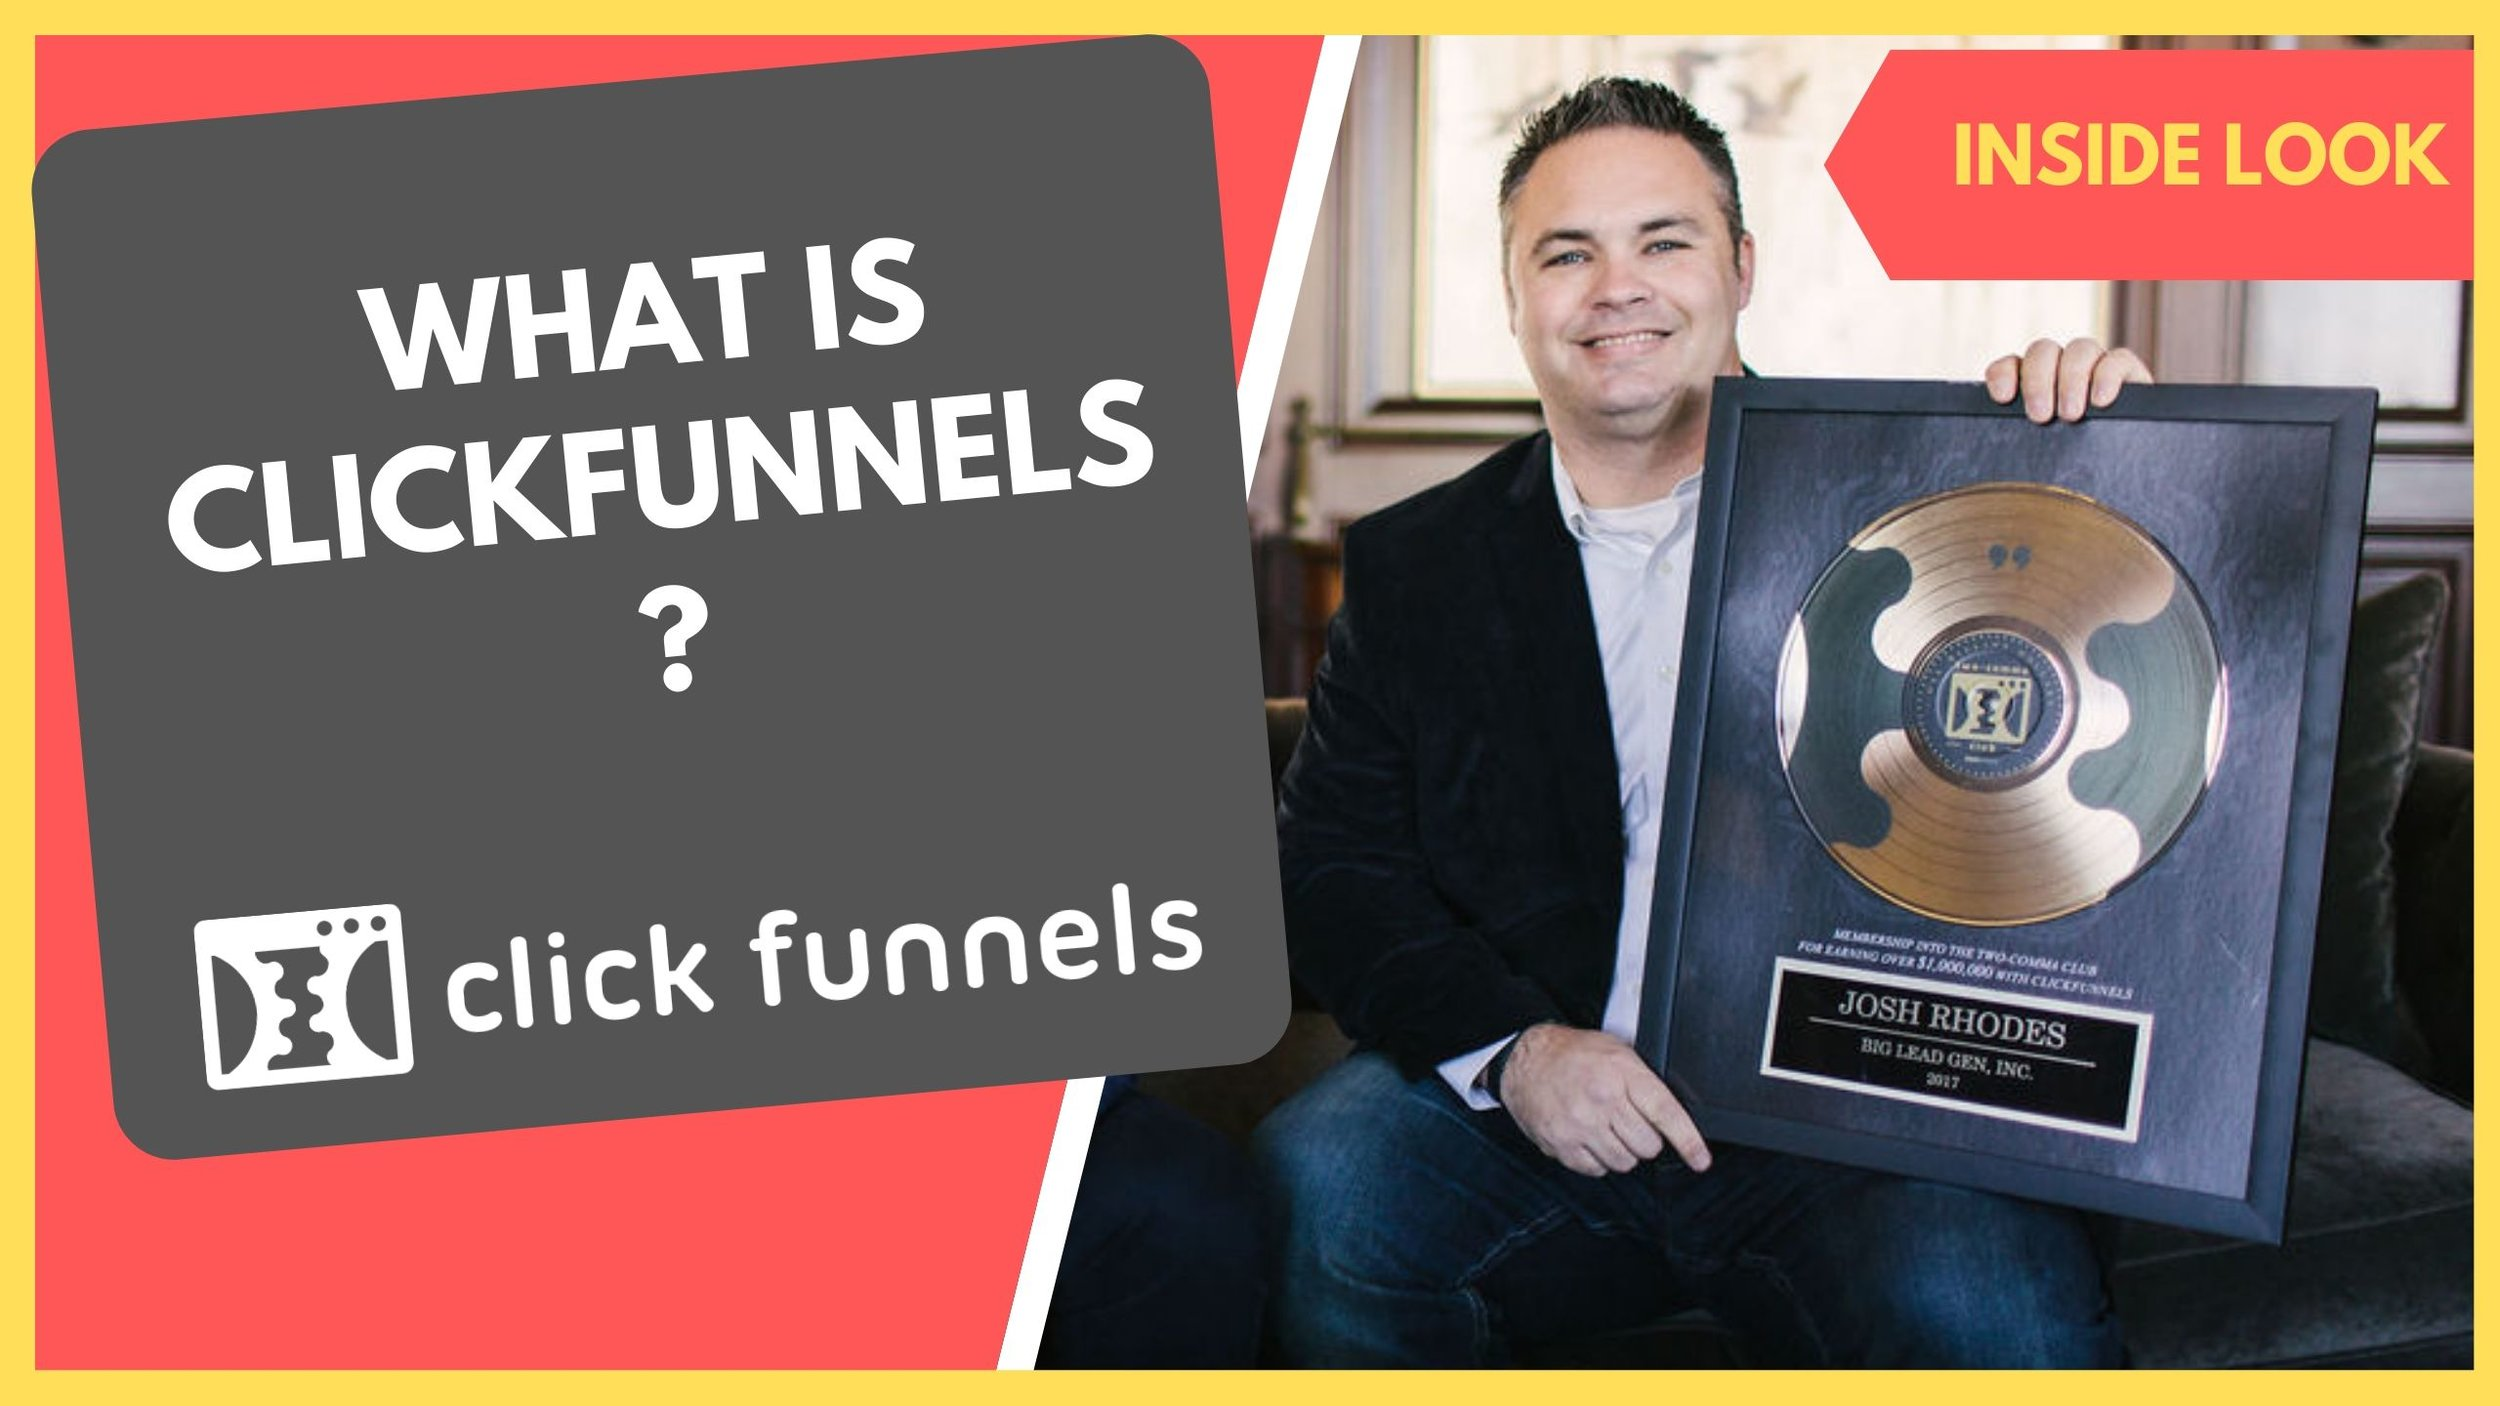 What Language Is Clickfunnels